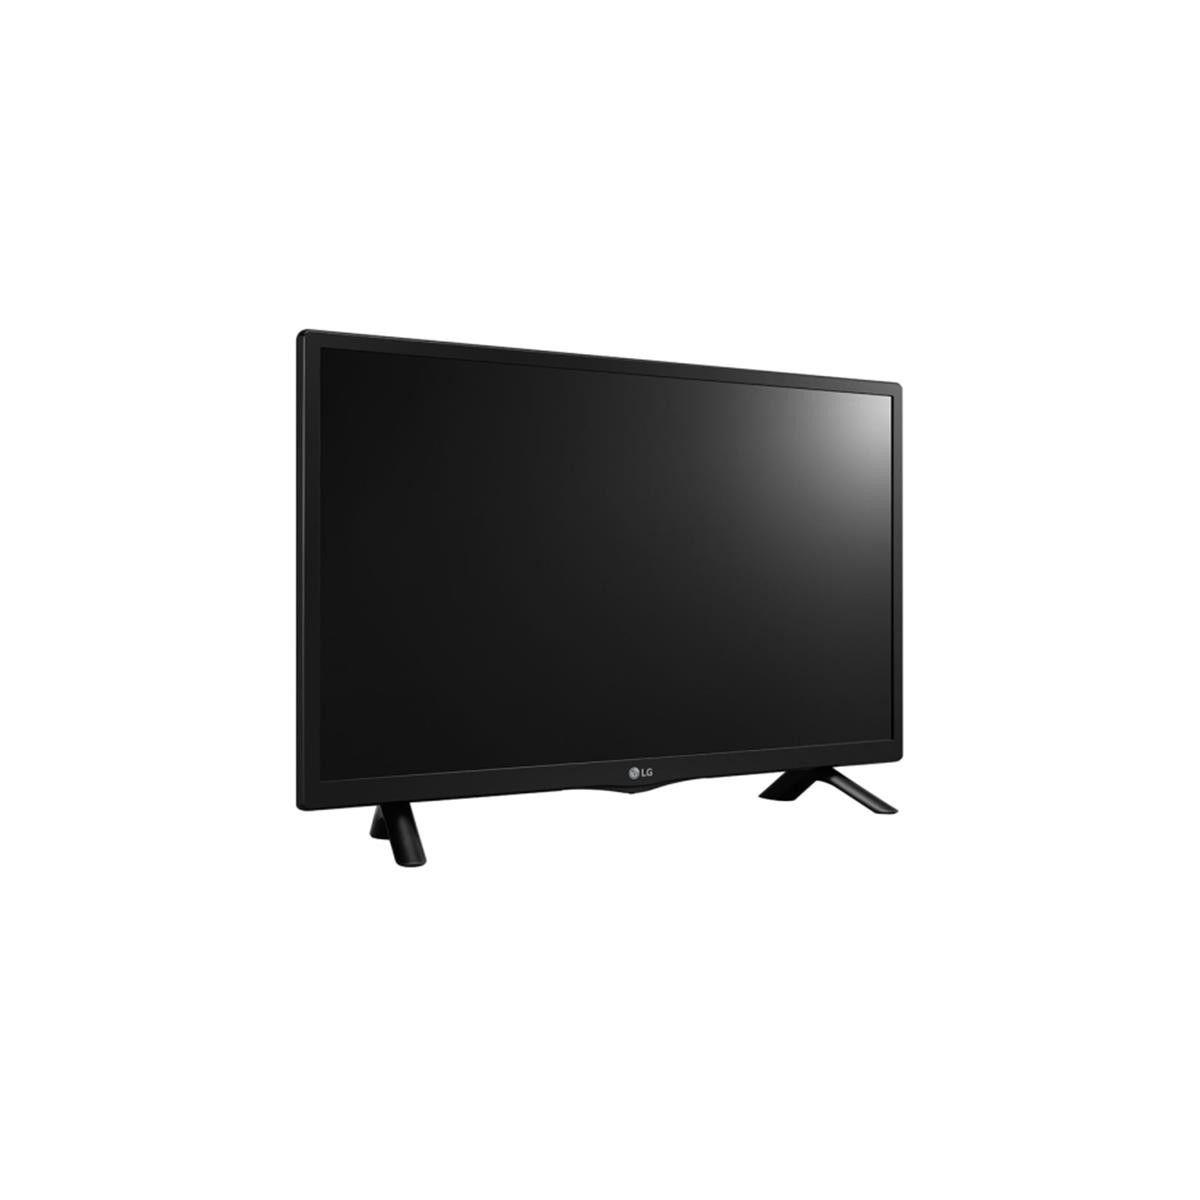 how to connect usb to lg led tv